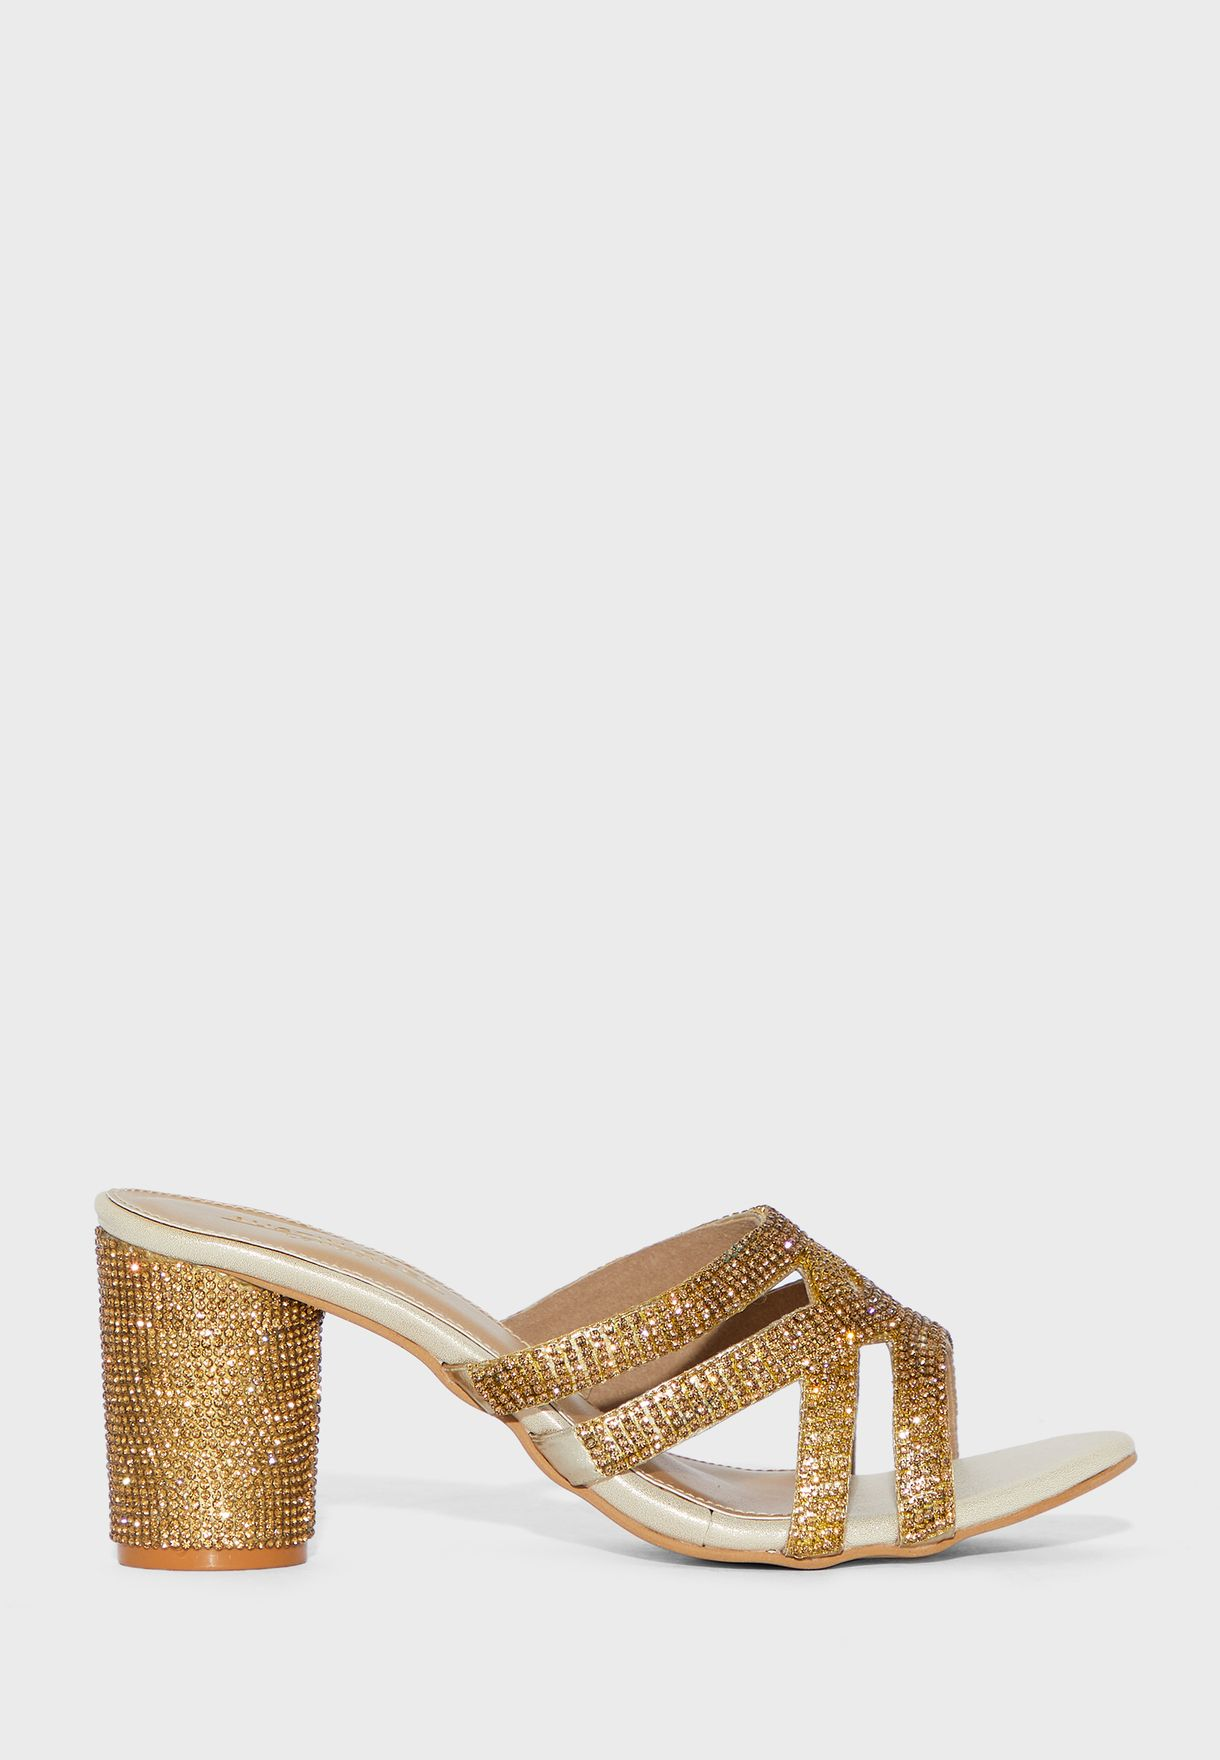 Buy Austin Reed Gold Multi Strap High Heel Sandal For Women In Mena Worldwide Aulhhs45dff